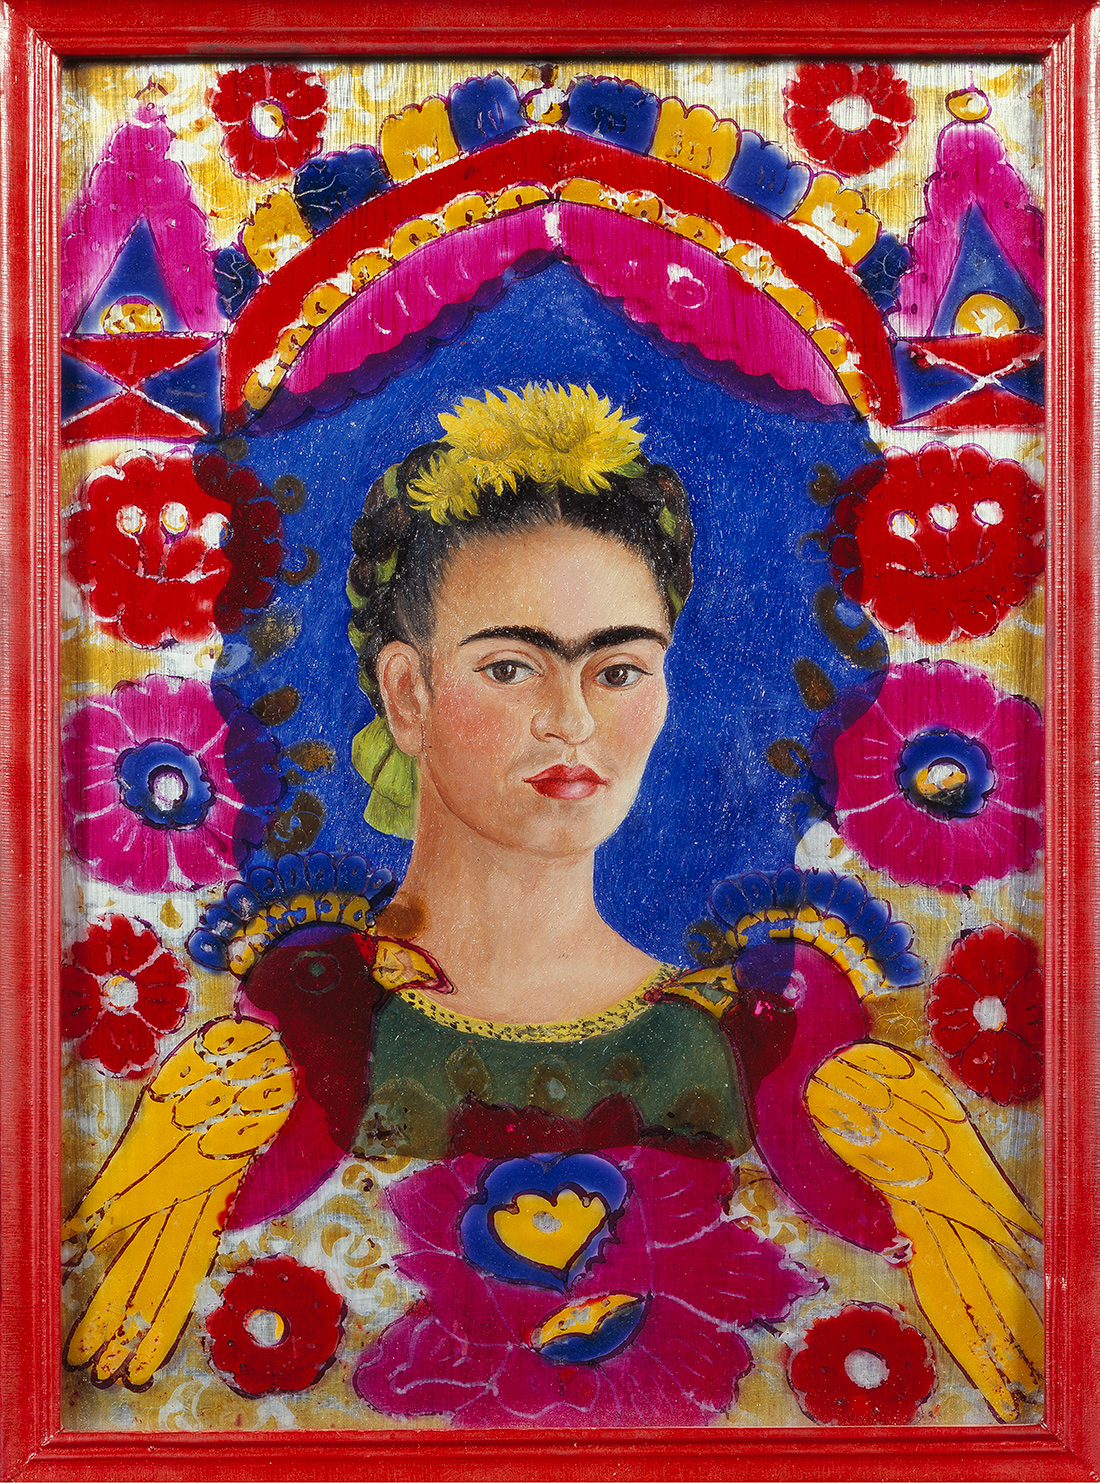 iVAMOS! Frida Kahlo Exhibition in Liverpool